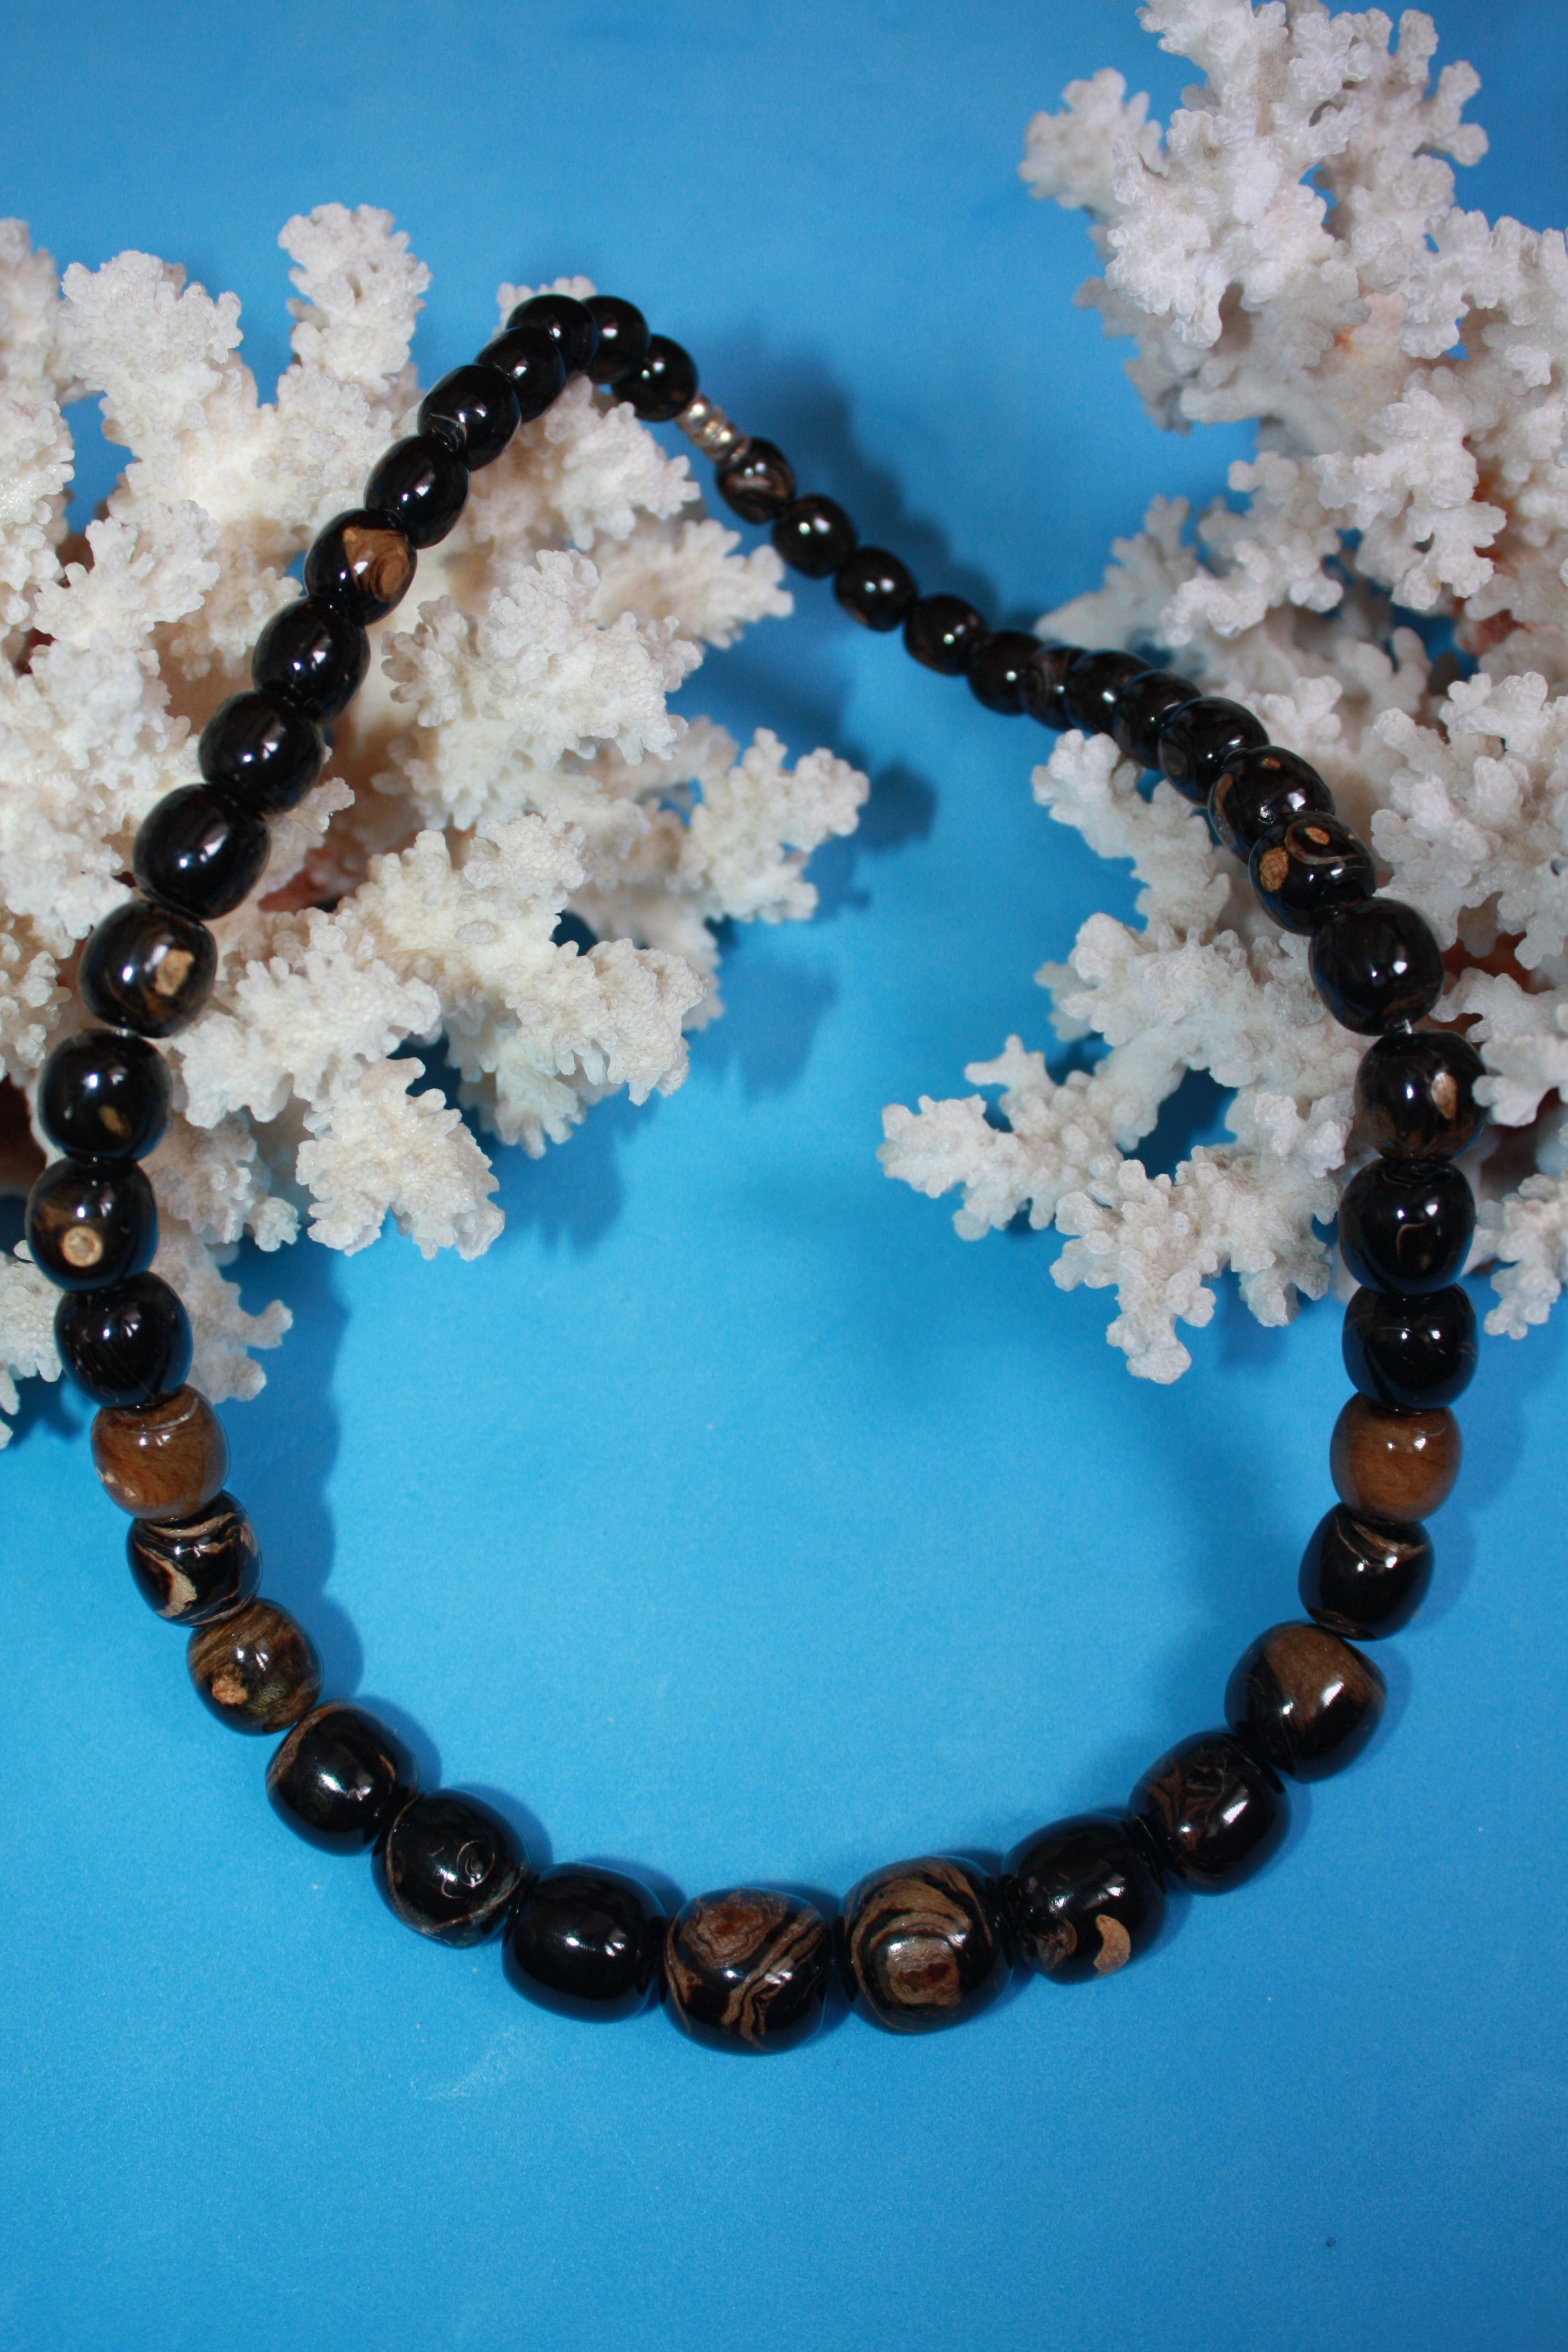 @BlackCoral4you Black and Brown Coral / Coral Negro y Marron  http://blackcoral4you.wordpress.com/